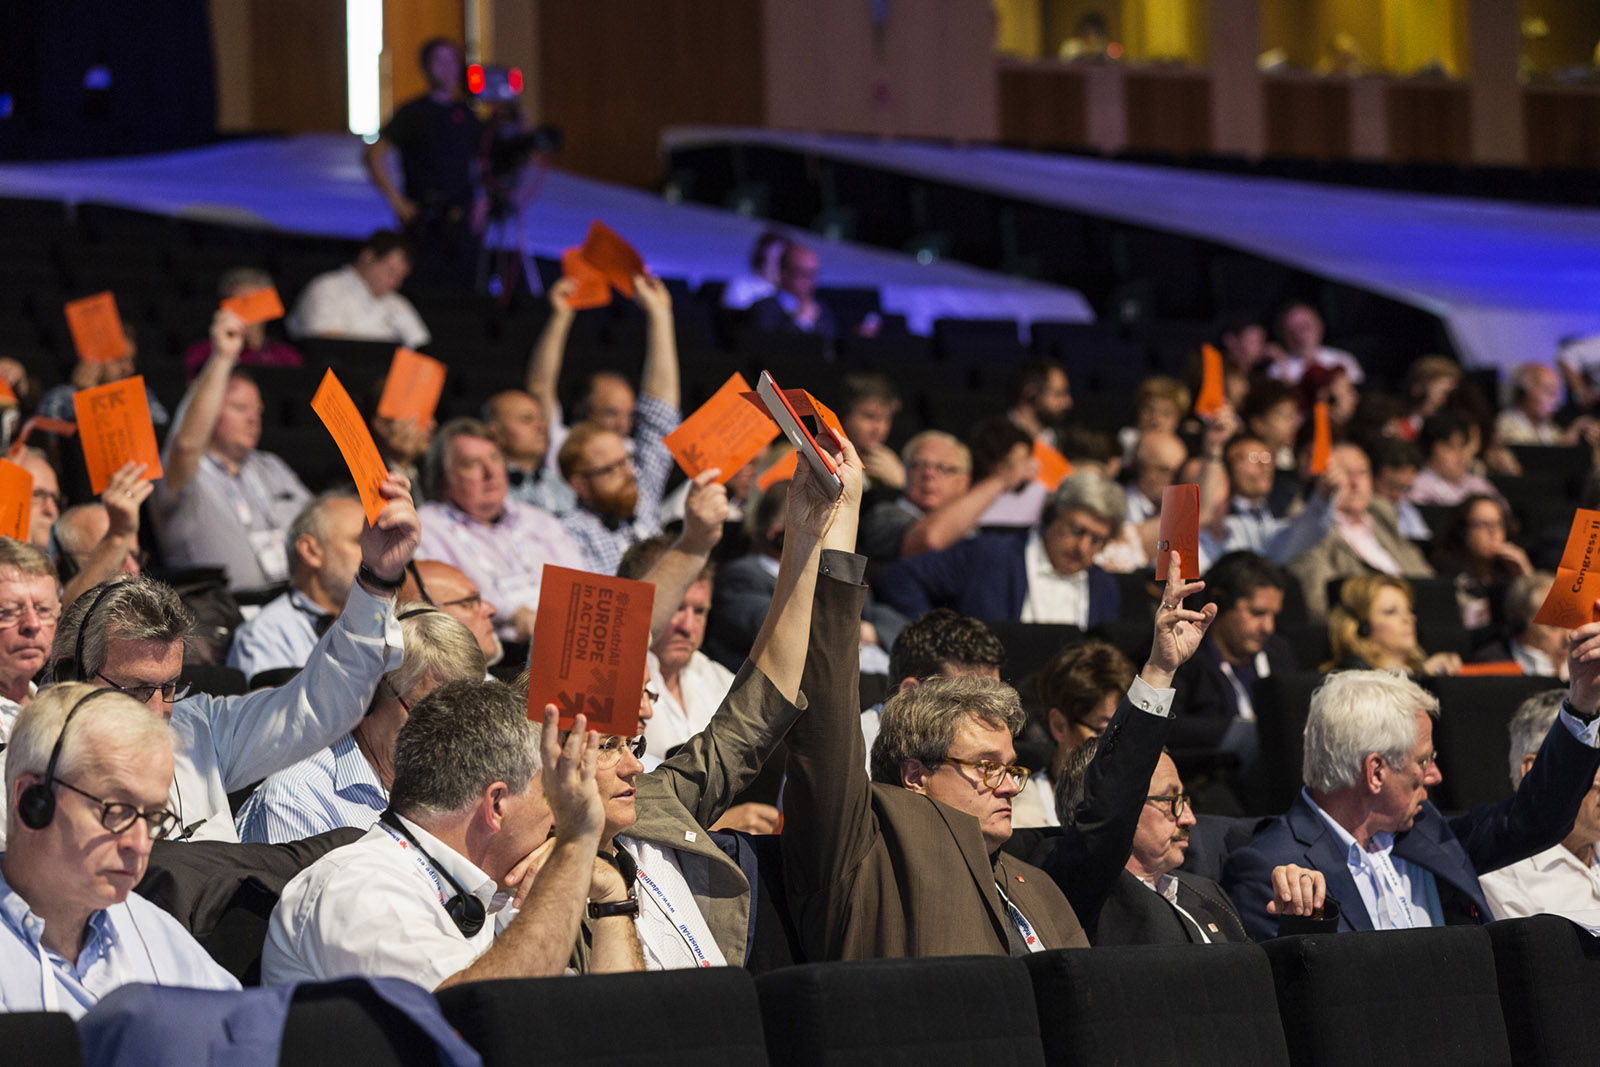 event conference photographer Madrid Spain 1059.JPG